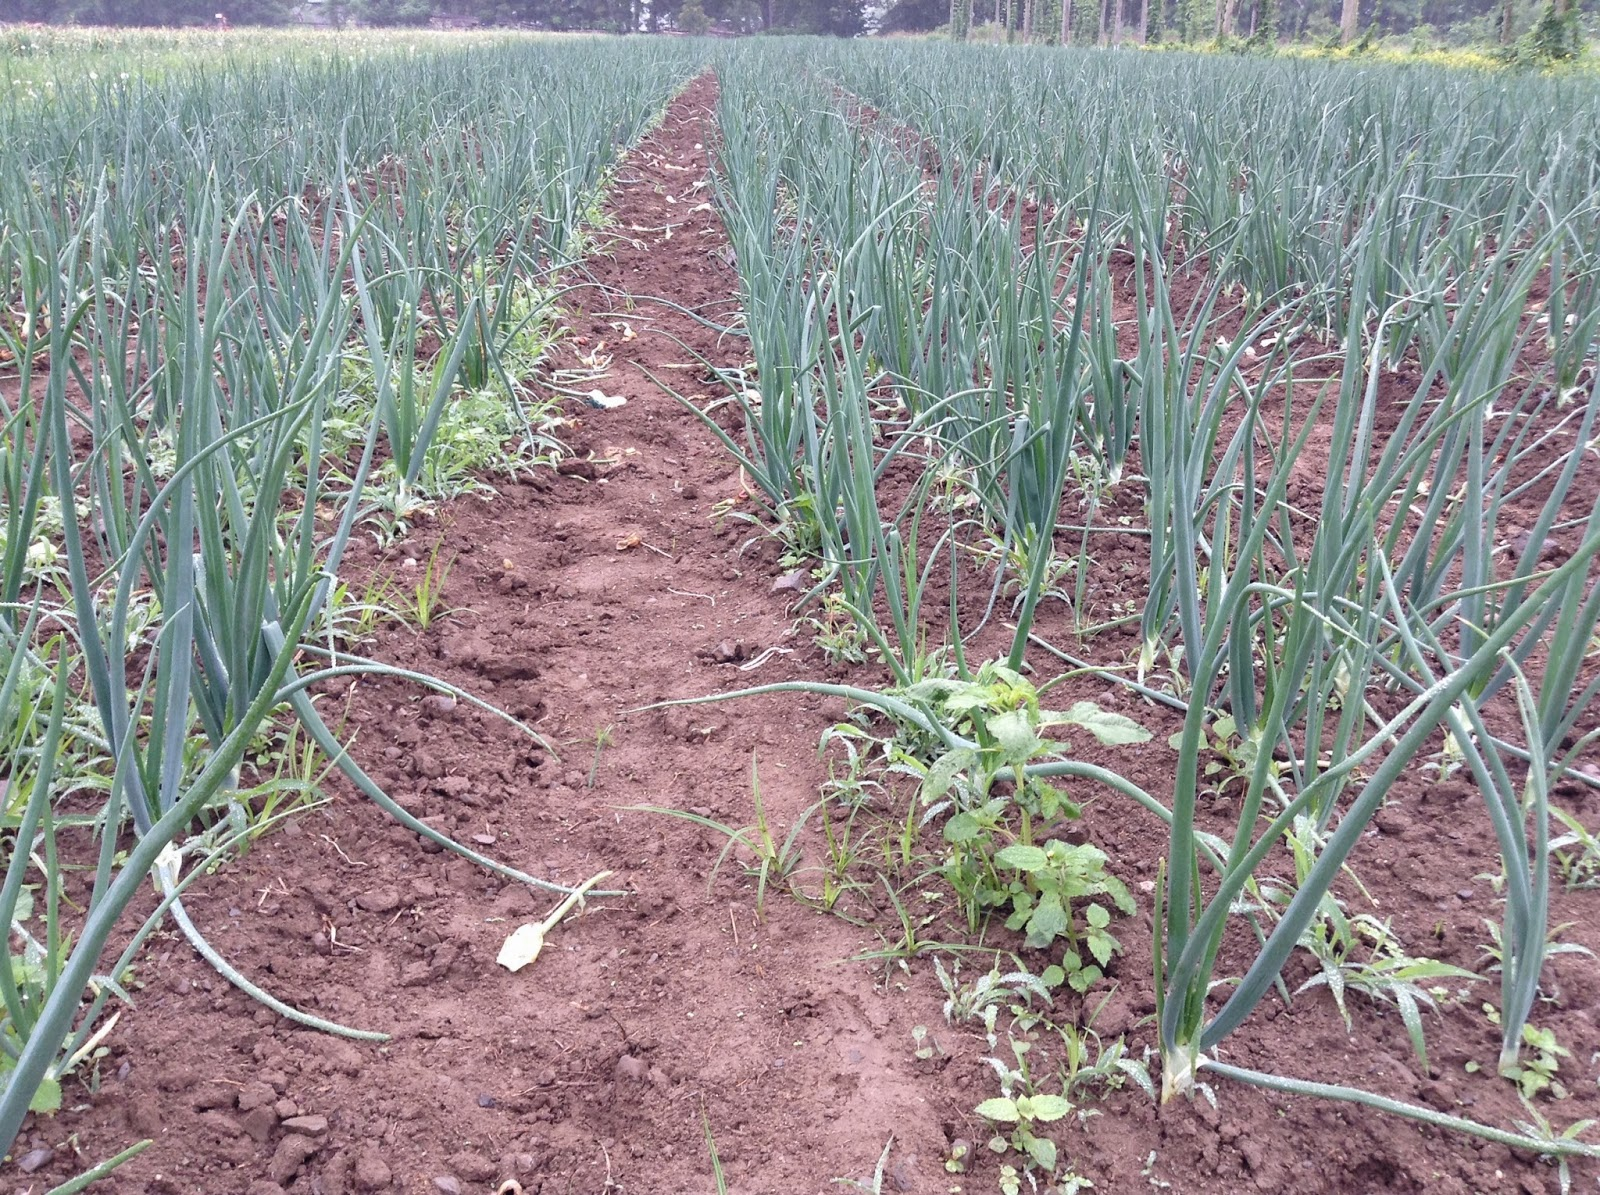 Spring Onions in the field